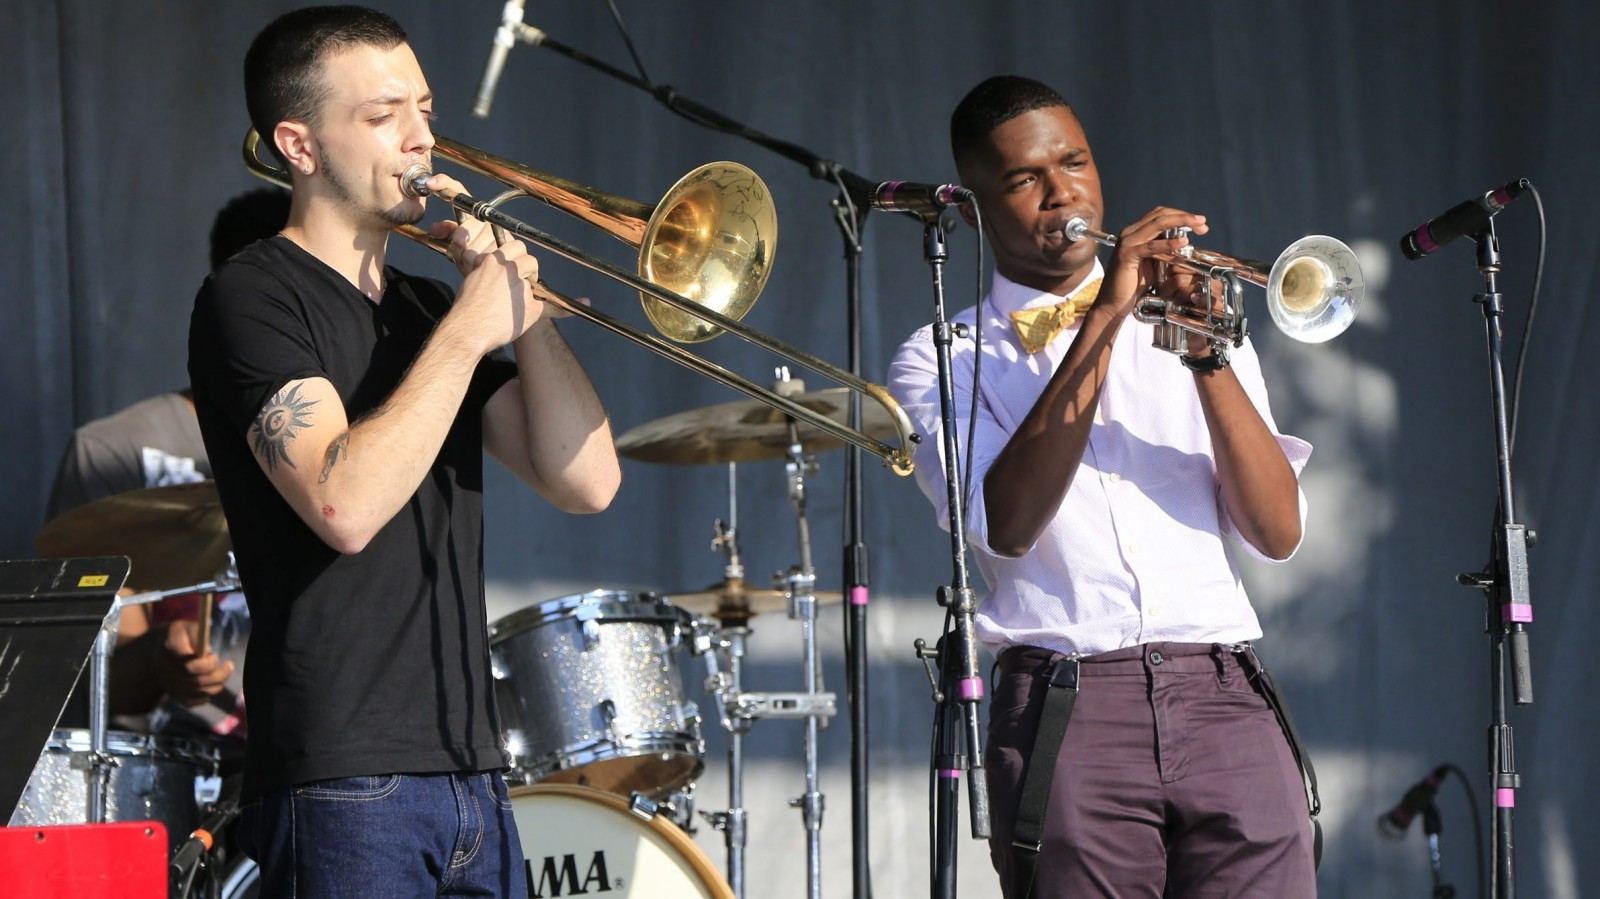 The M&T Band Rising Star Stage at the Lewiston Jazz Festival put the spotlight on young talent including the Buffalo State Student Band with Nick Torre (trombone) and Corey Talford (trumpet). (Harry Scull Jr./Buffalo News)